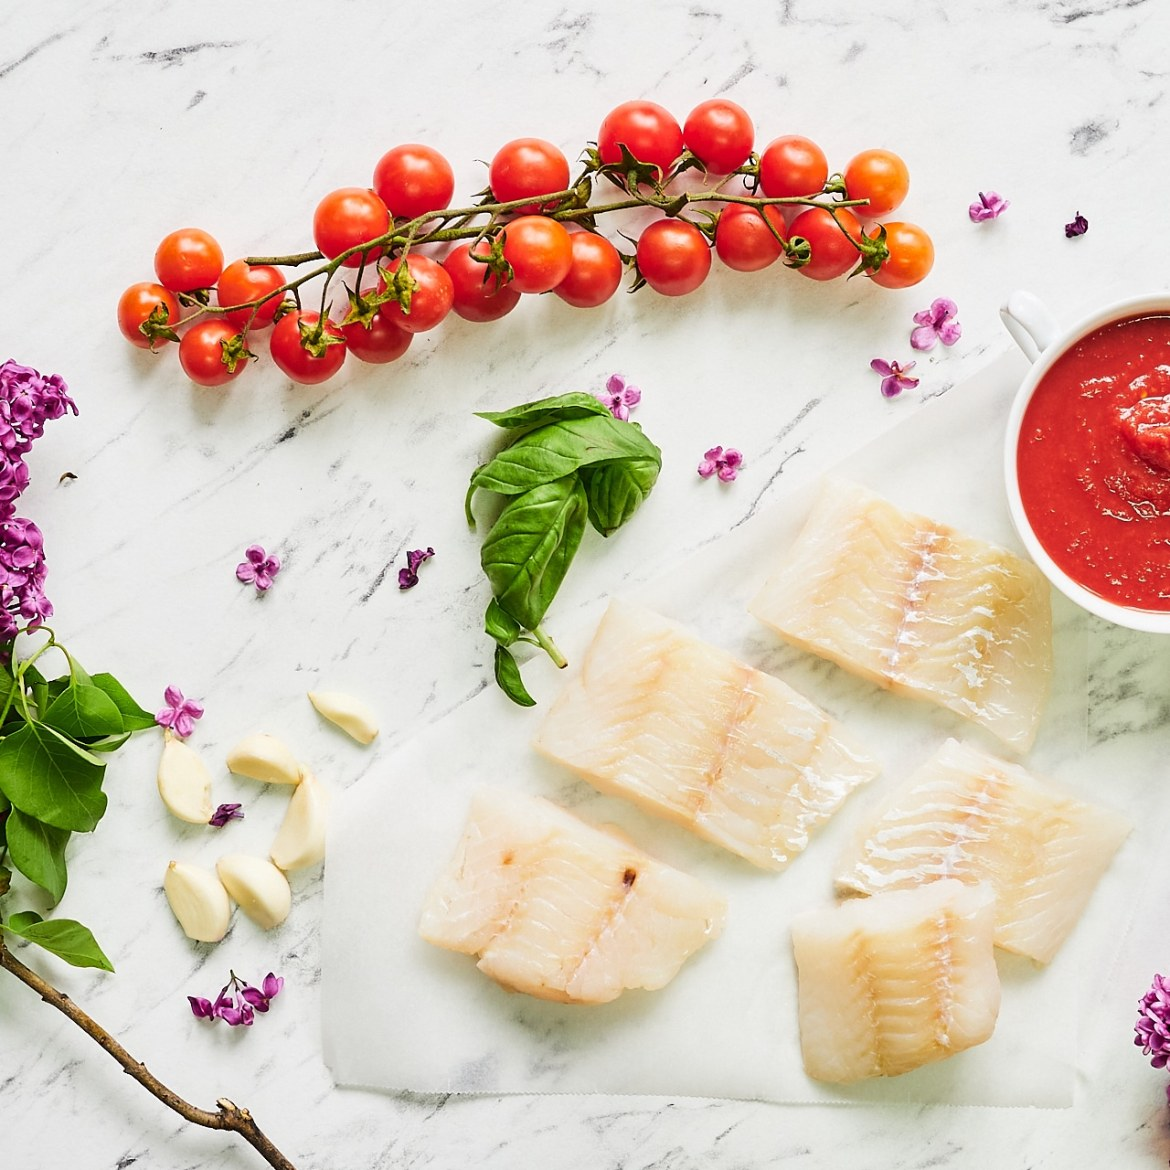 ingredients cod fillets tomato sauce